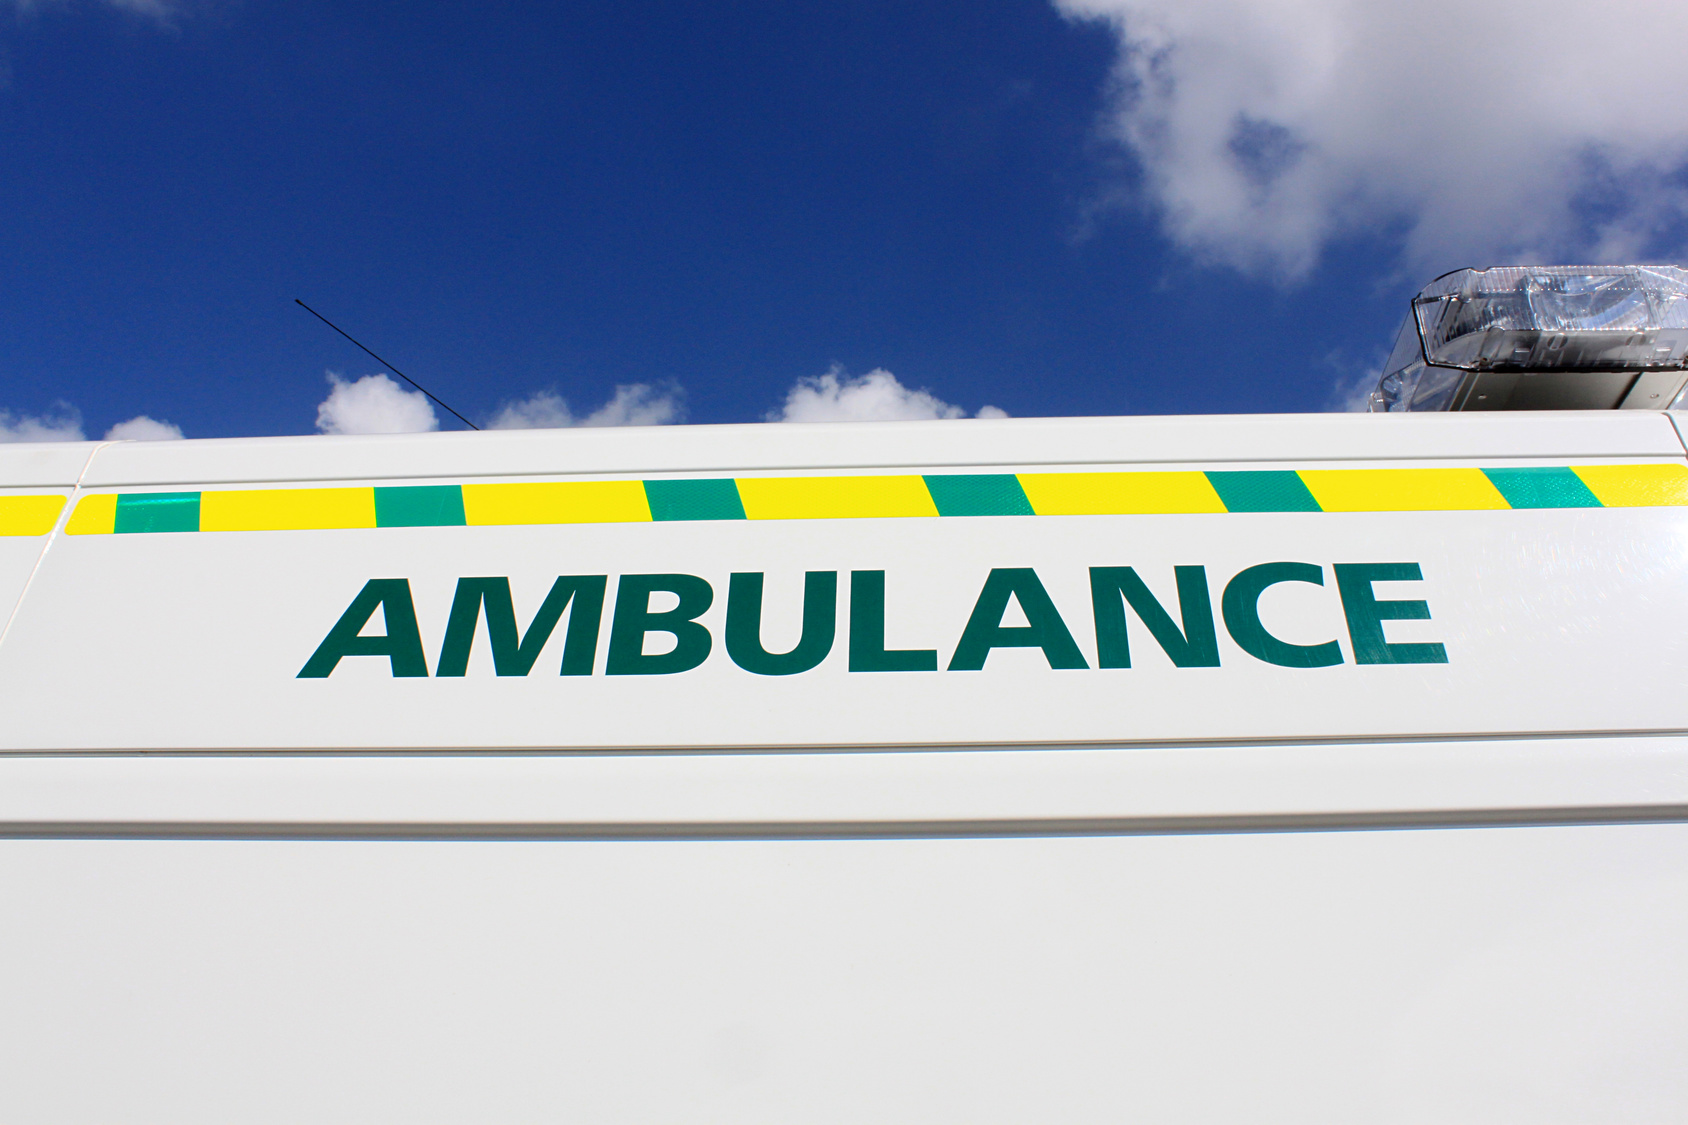 The East of England Ambulance Service Trust scored very highly on customer satisfaction